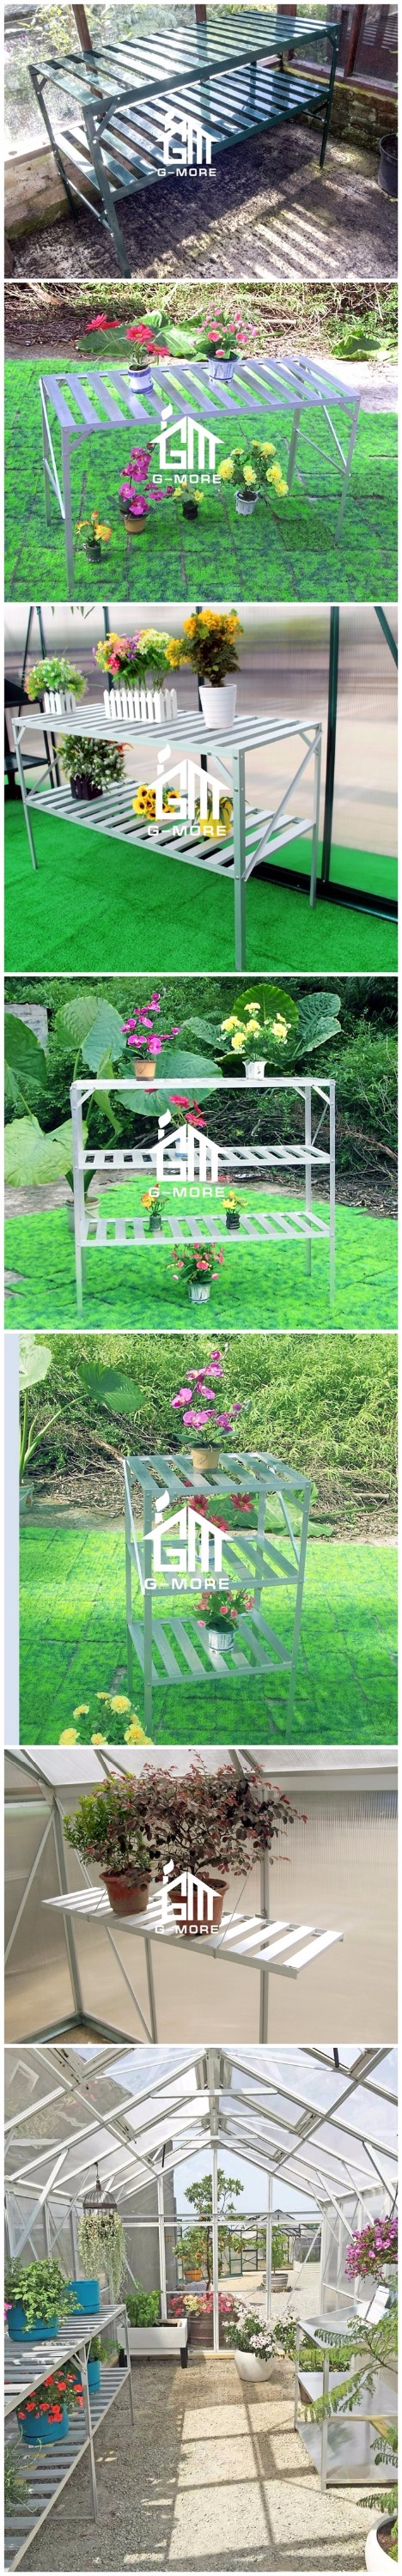 G-MORE Multifunctional Practical Greenhouse Tool Bench / Aluminum Table Greenhouse Parts 2 Tier